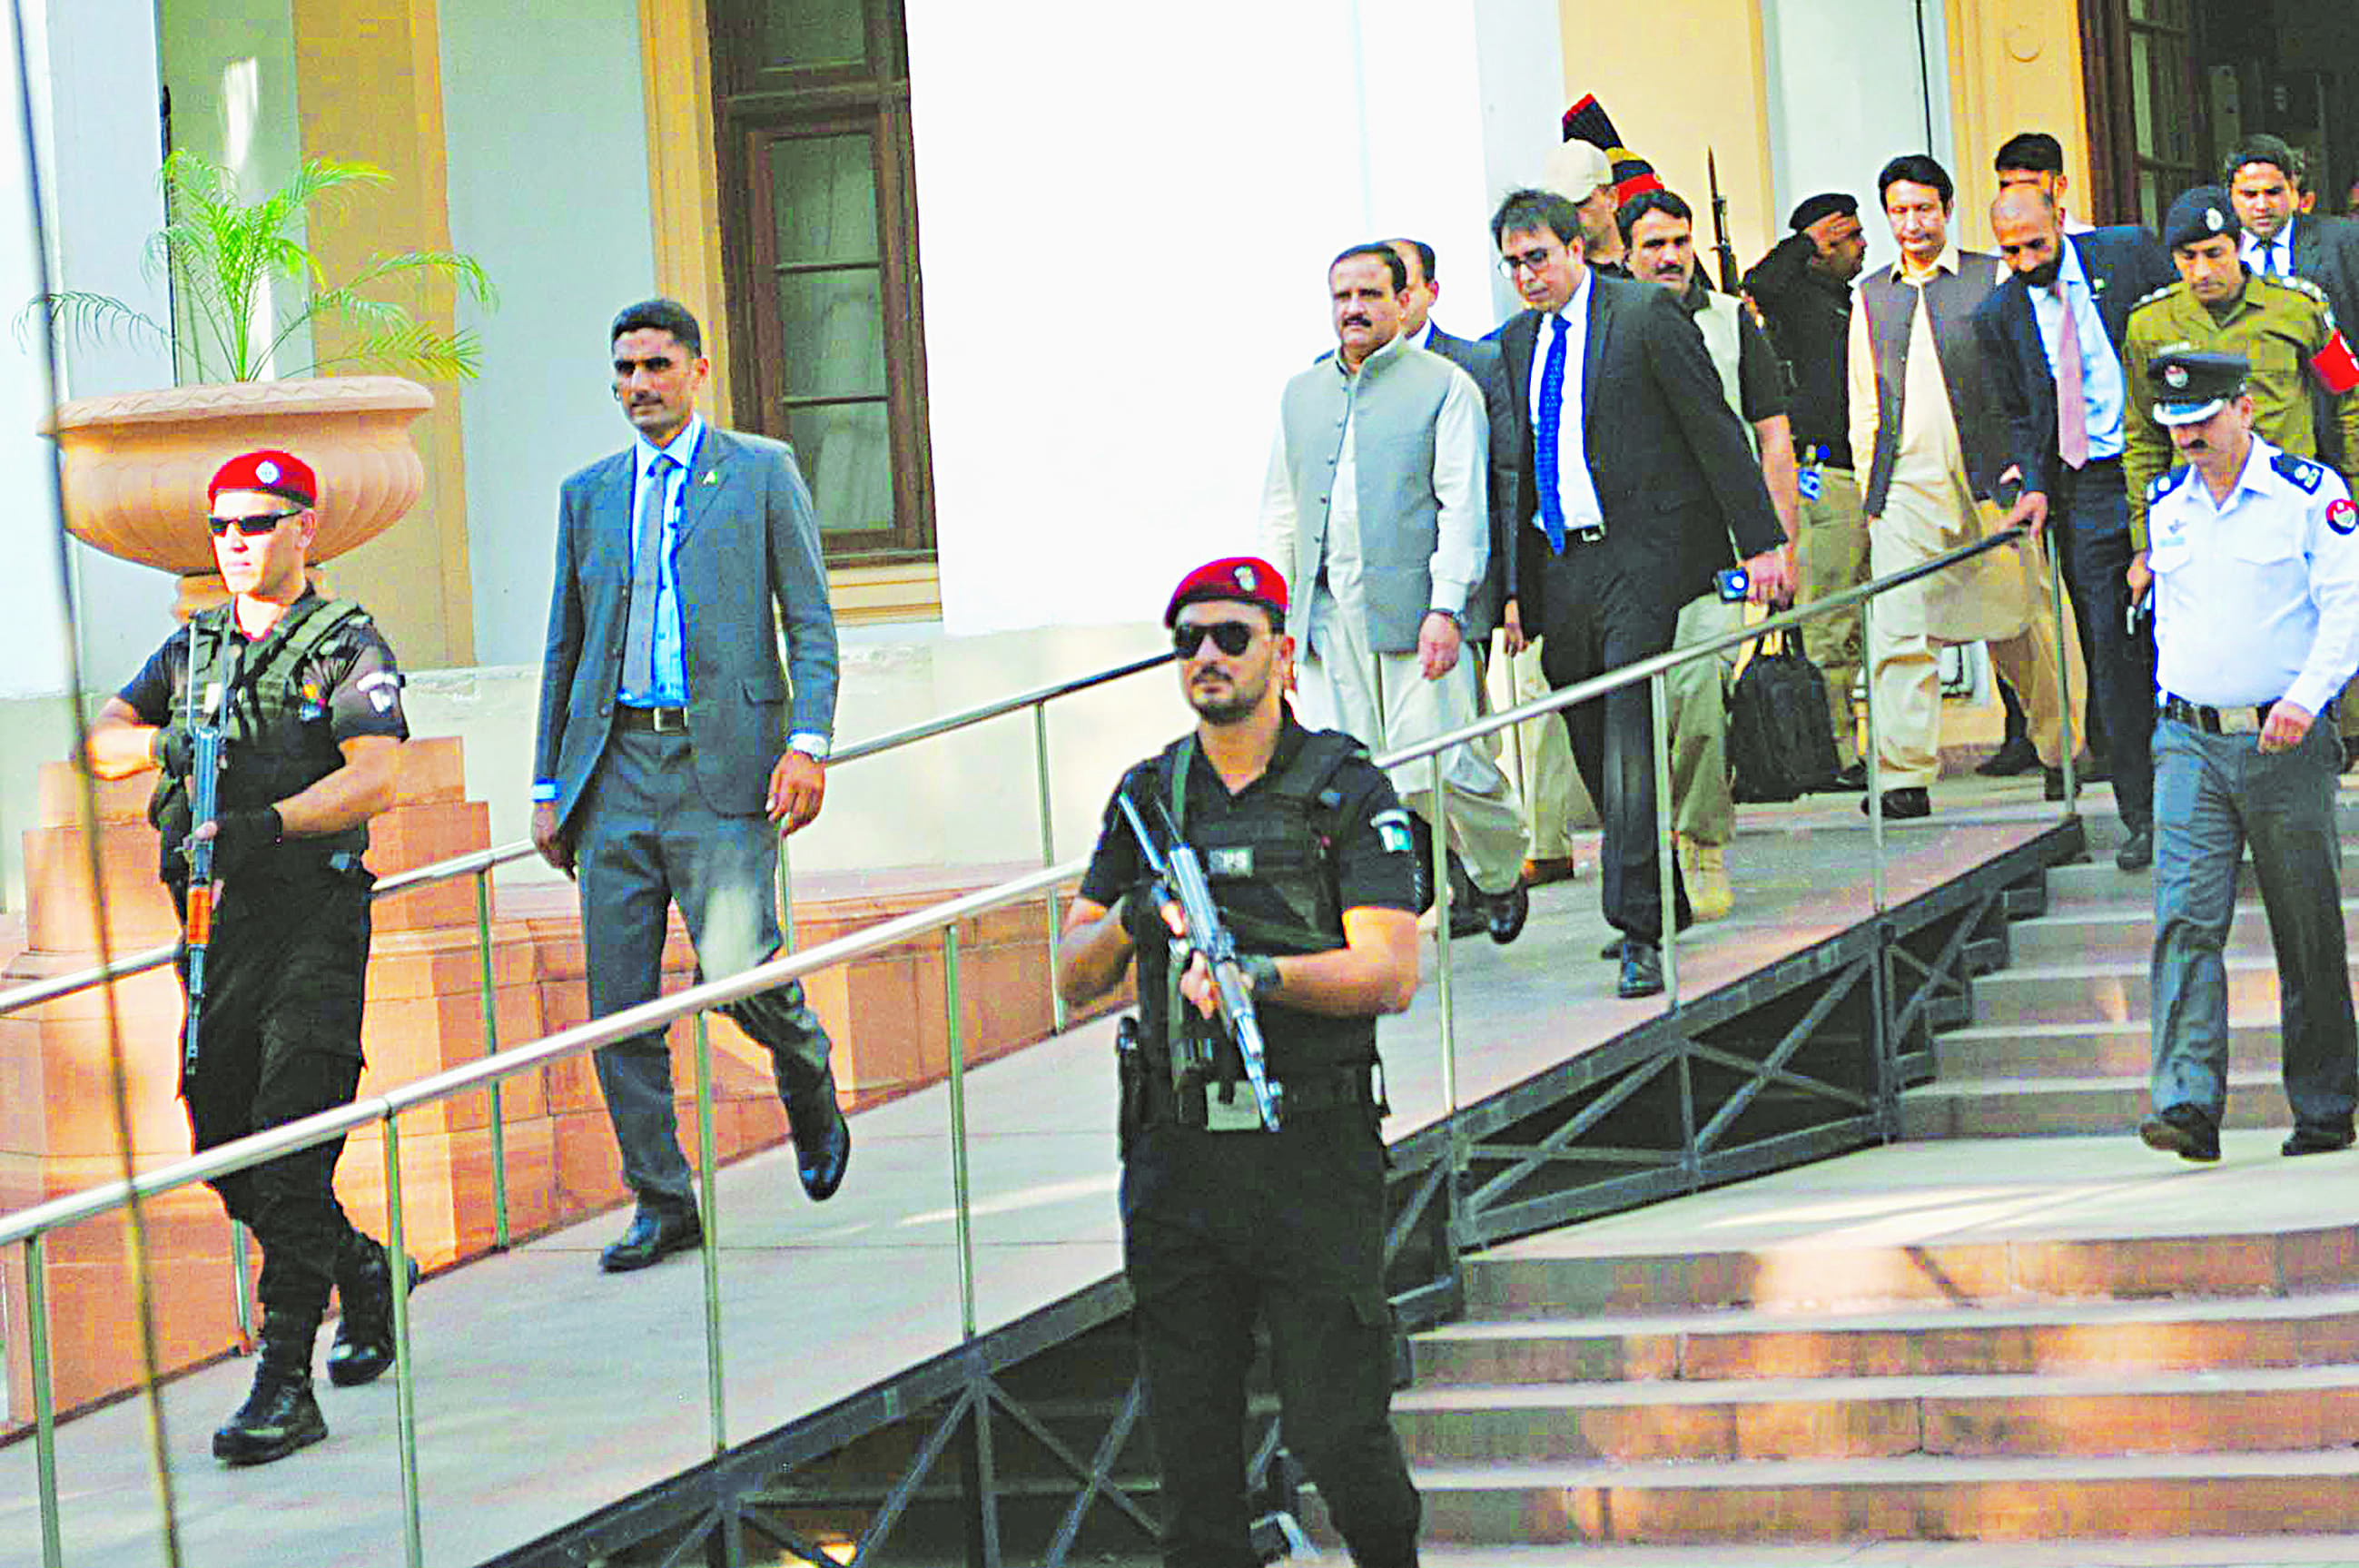 Chief Minister Usman Buzdar leaves the Punjab Assembly after attending a budget session | M.Arif/White star